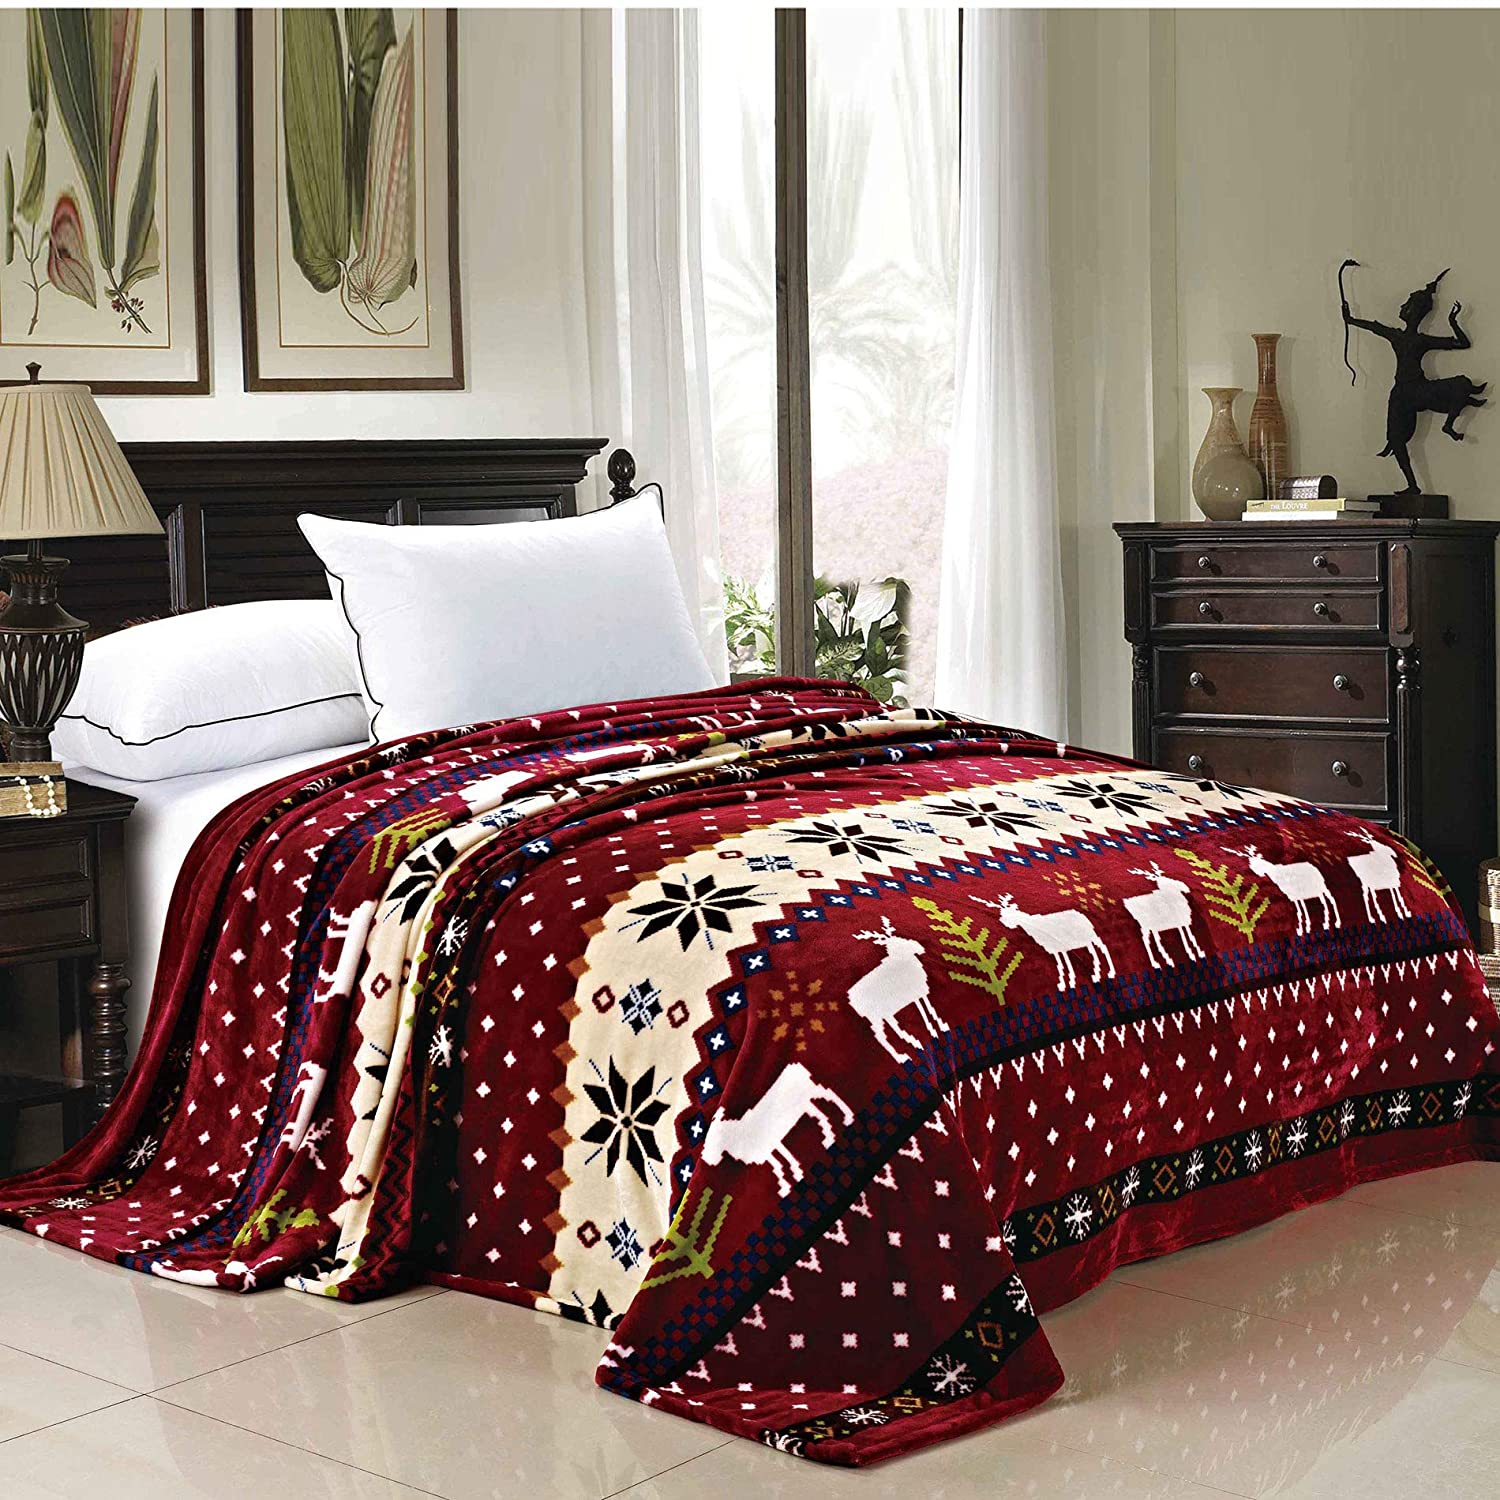 Home Soft Things Christmas Collection Flannel Fleece Blanket, Twin